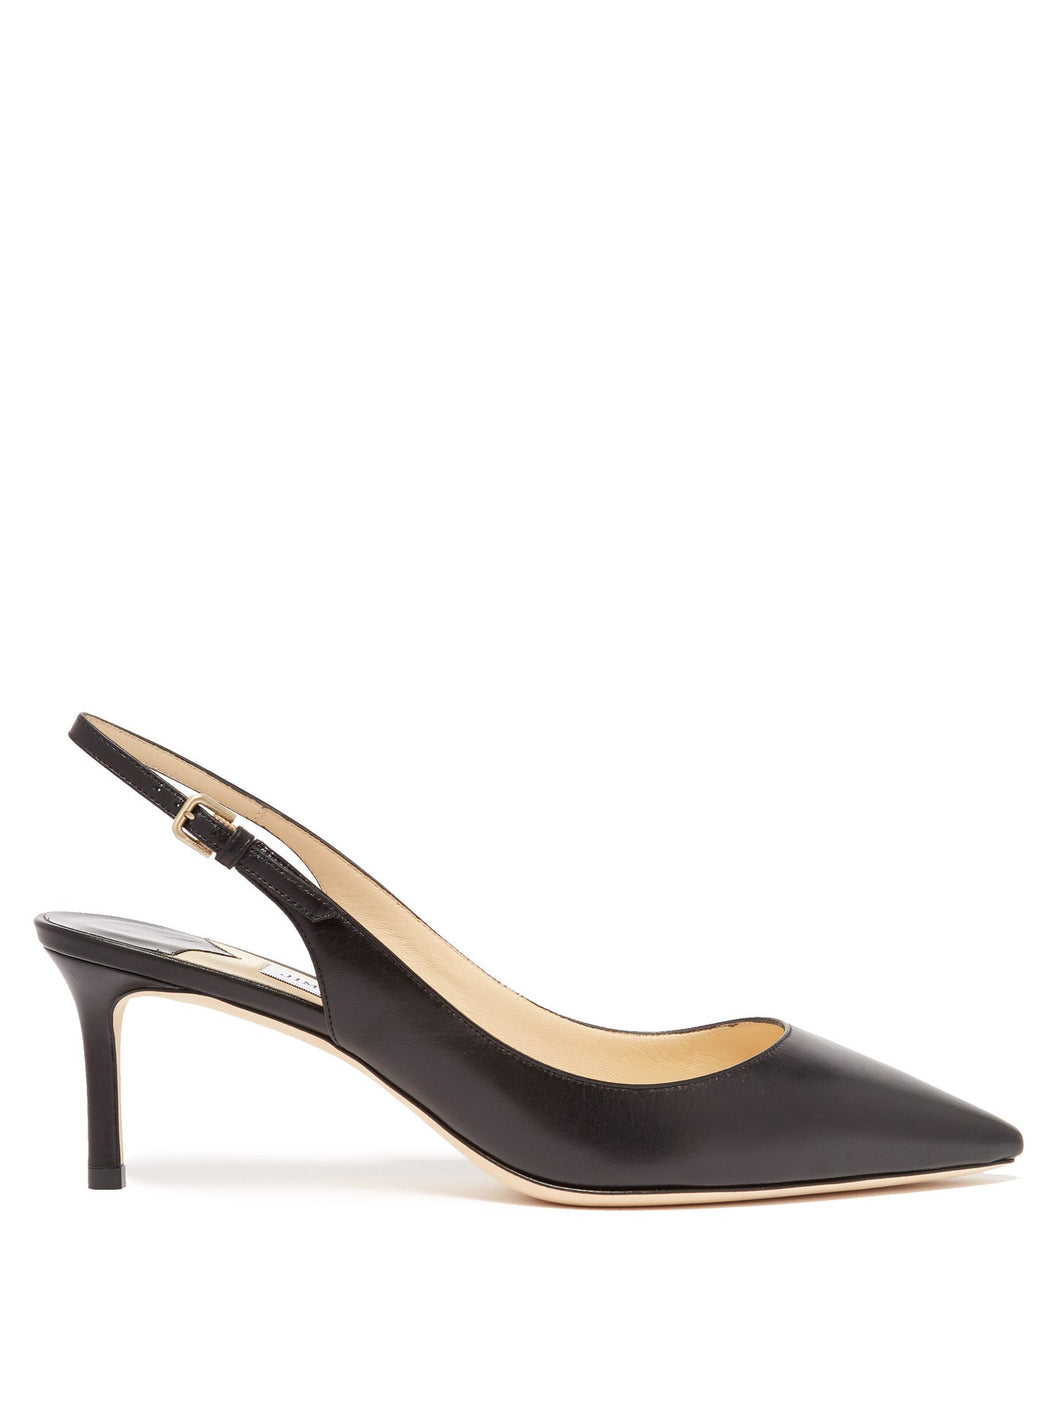 Erin 60 slingback leather pumps